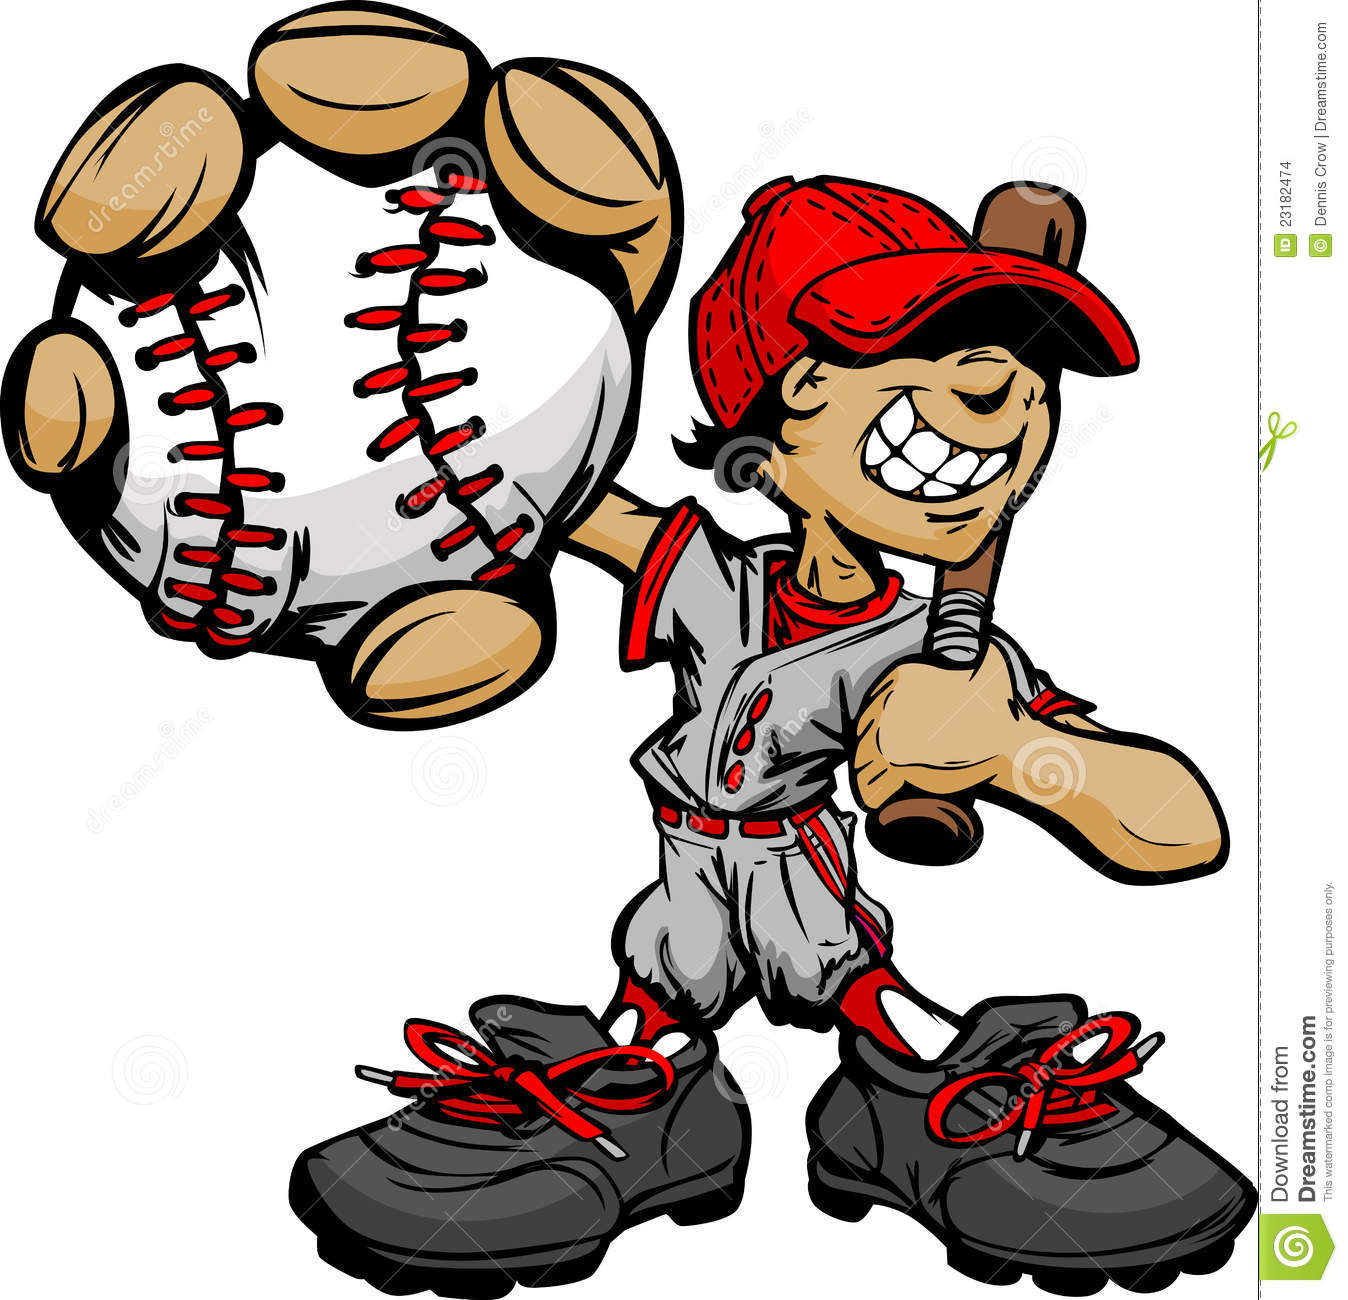 1348x1300 Baseball Bat Clipart Kid Baseball